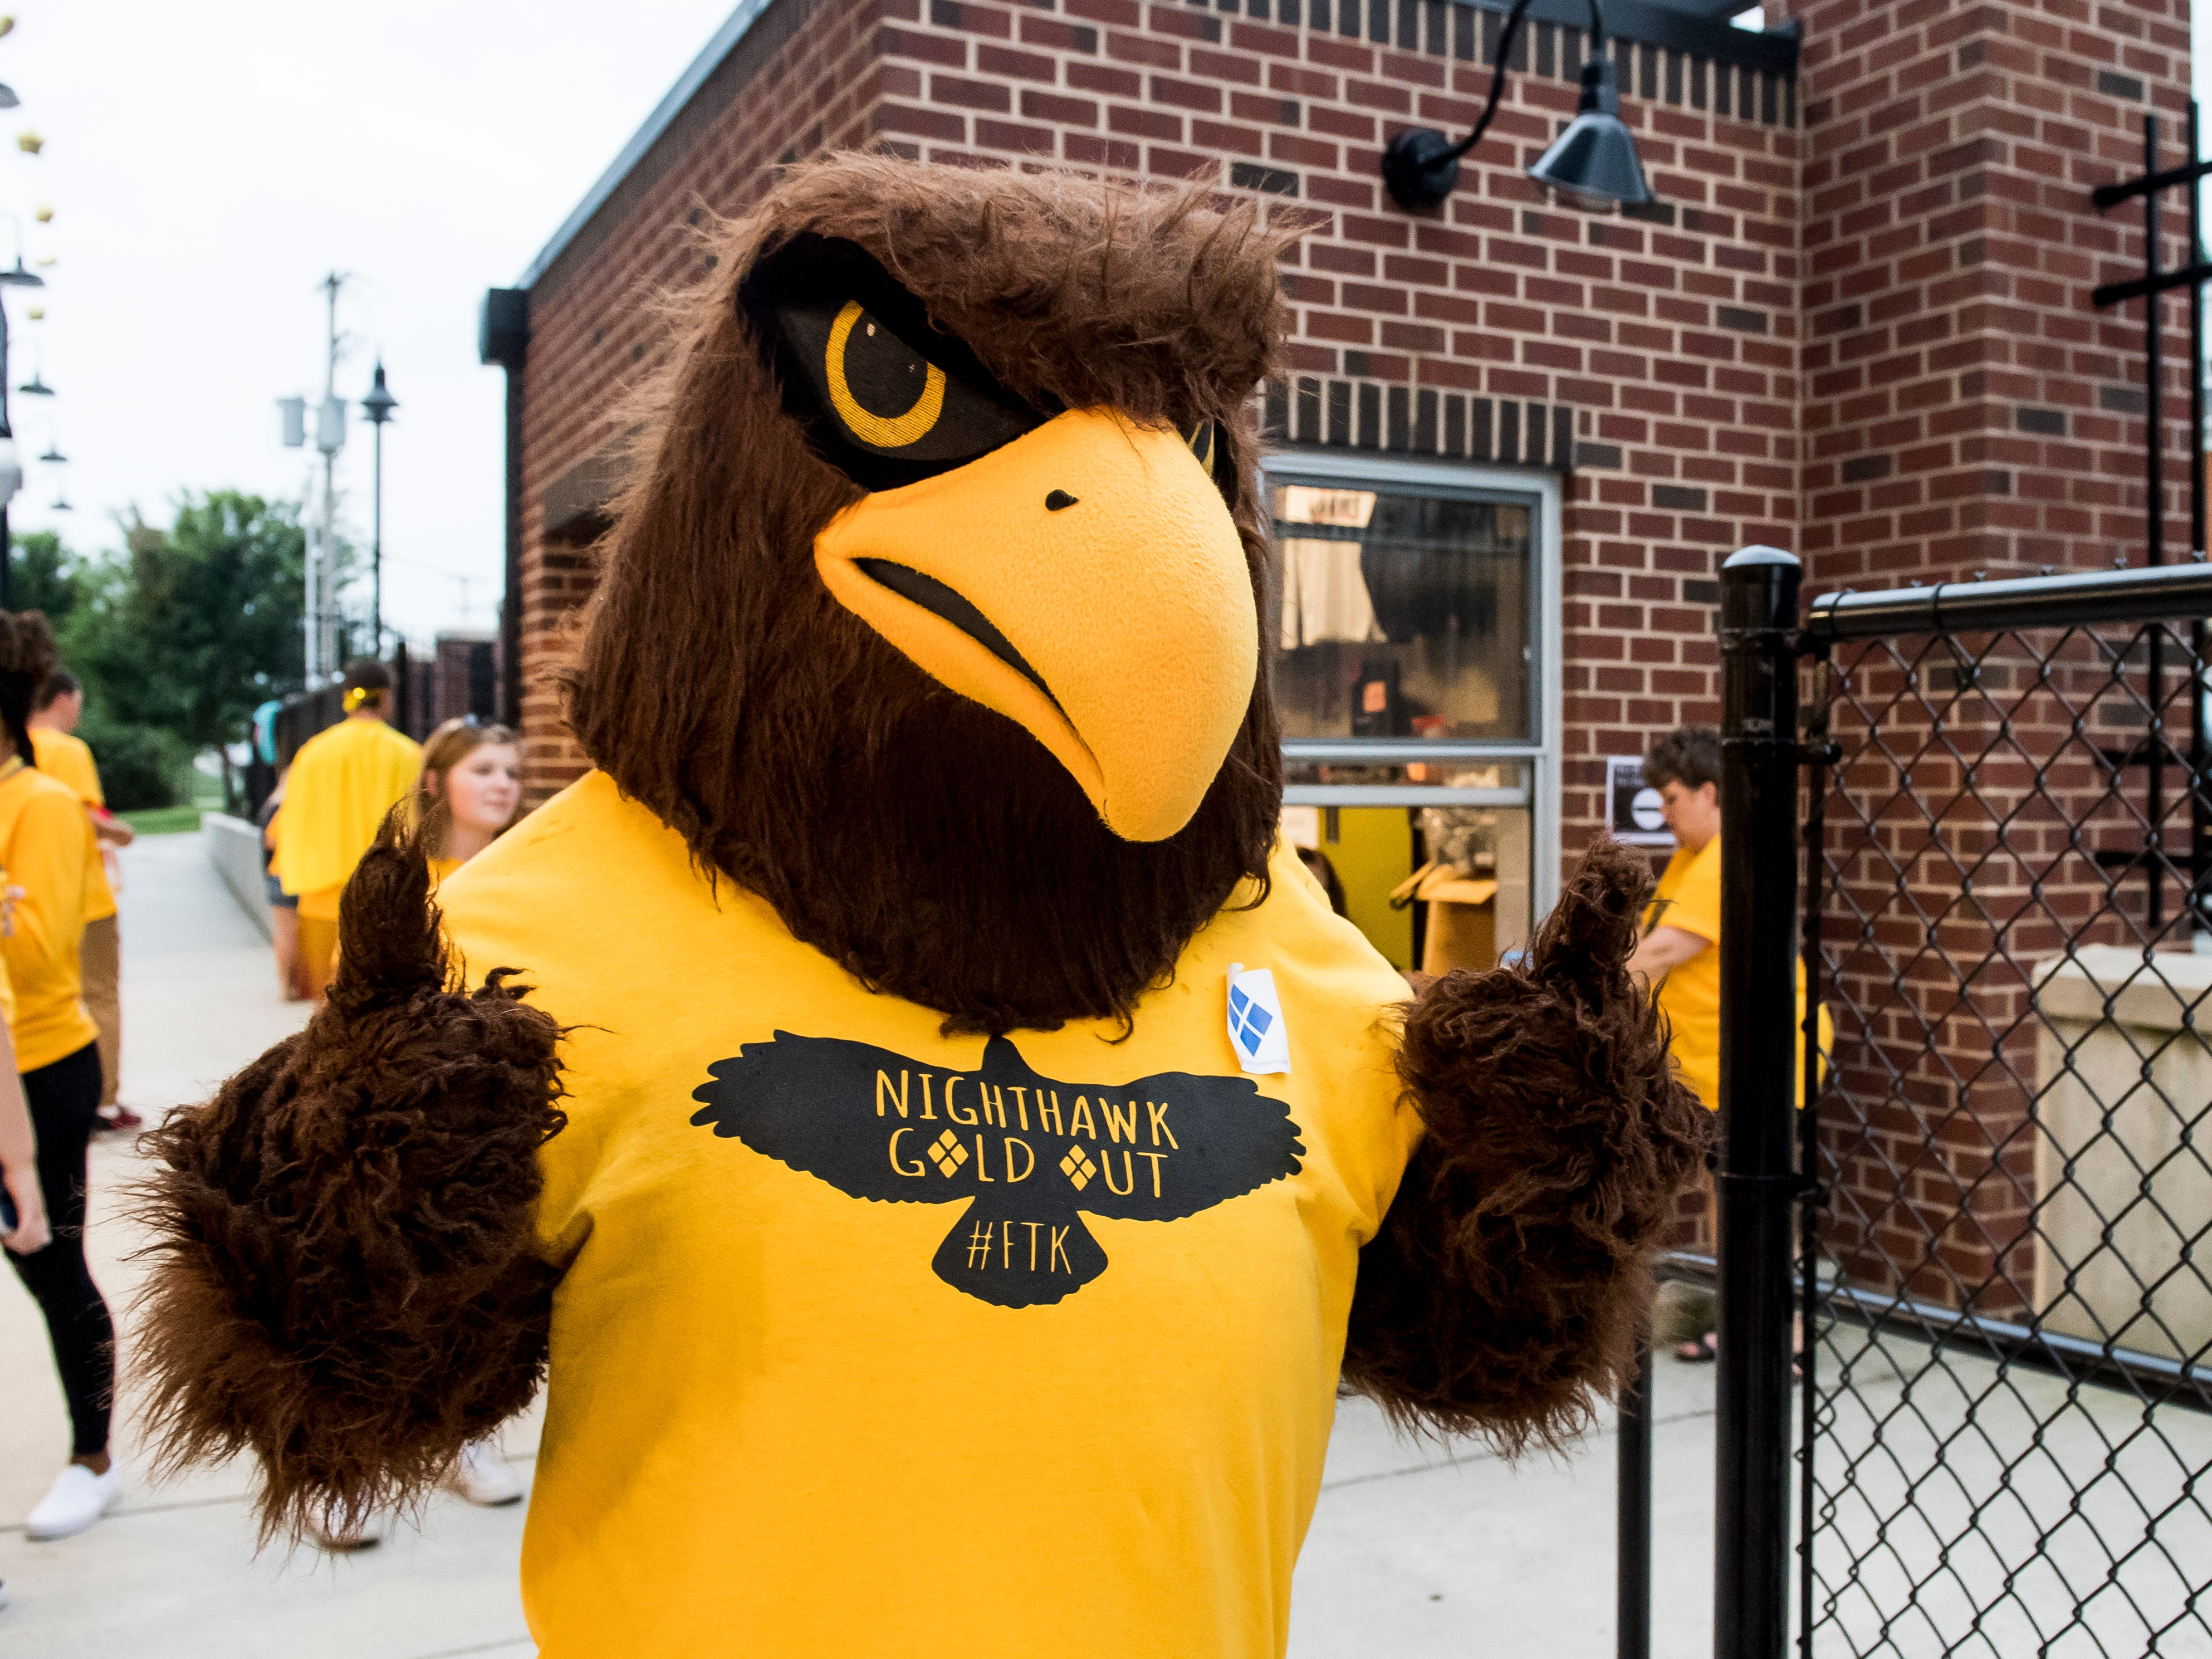 Hanover goes gold to raise awareness, funds for pediatric cancer